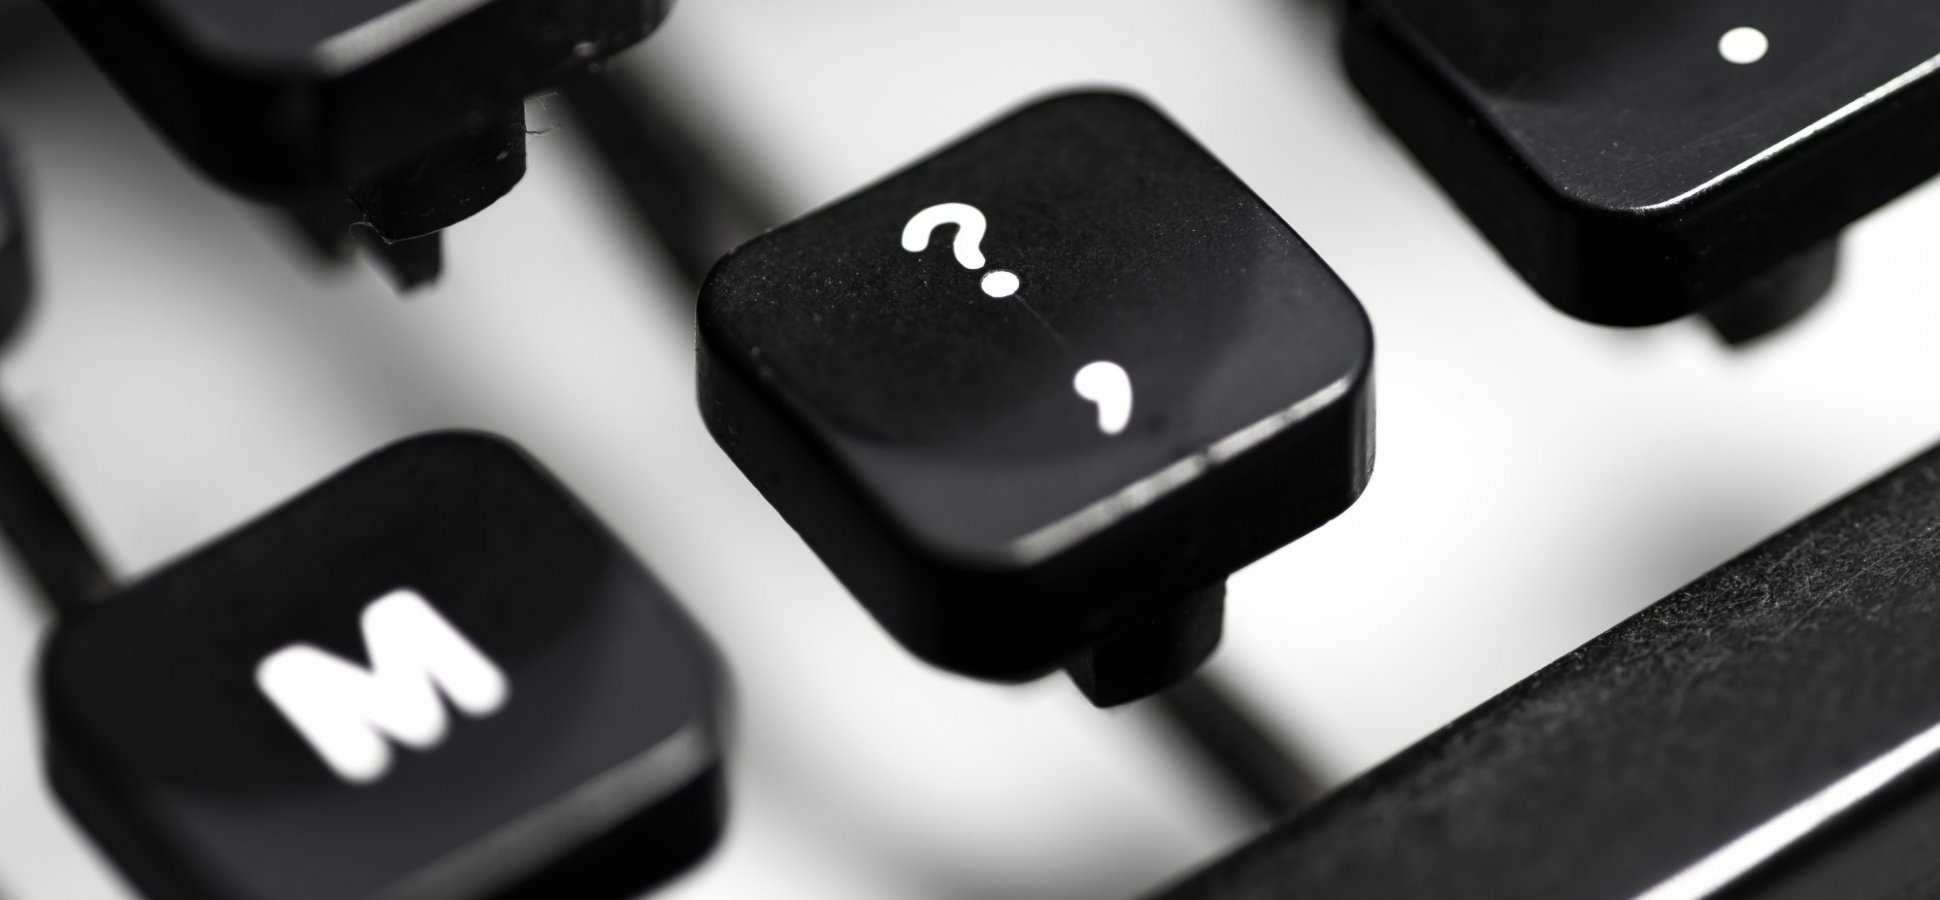 How 1 Missing Comma Just Cost This Company $5 Million (but Did Make Its Employees $5 Million Richer)